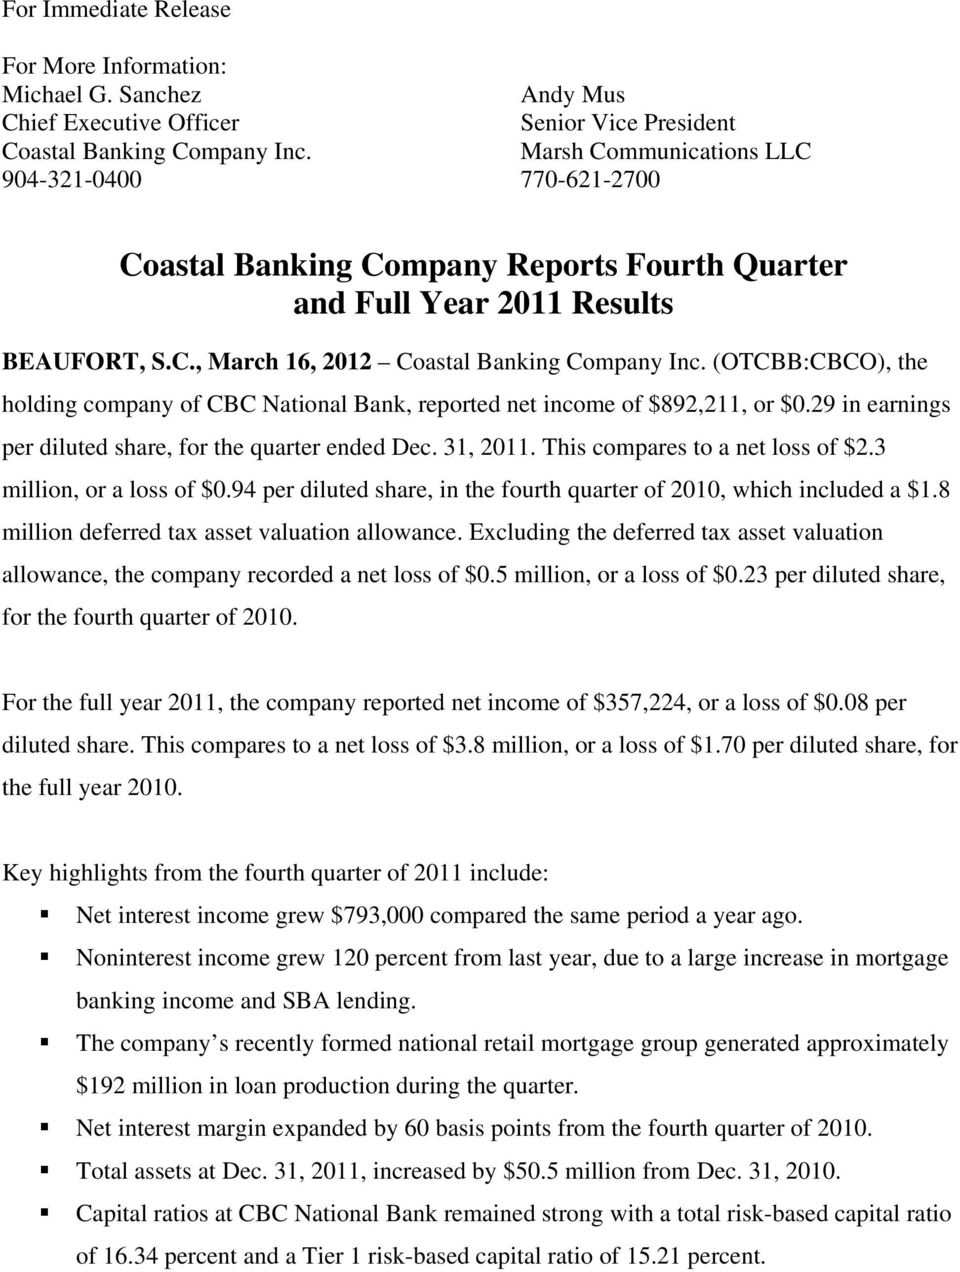 (OTCBB:CBCO), the holding company of CBC National Bank, reported net income of $892,211, or $0.29 in earnings per diluted share, for the quarter ended Dec. 31, 2011. This compares to a net loss of $2.